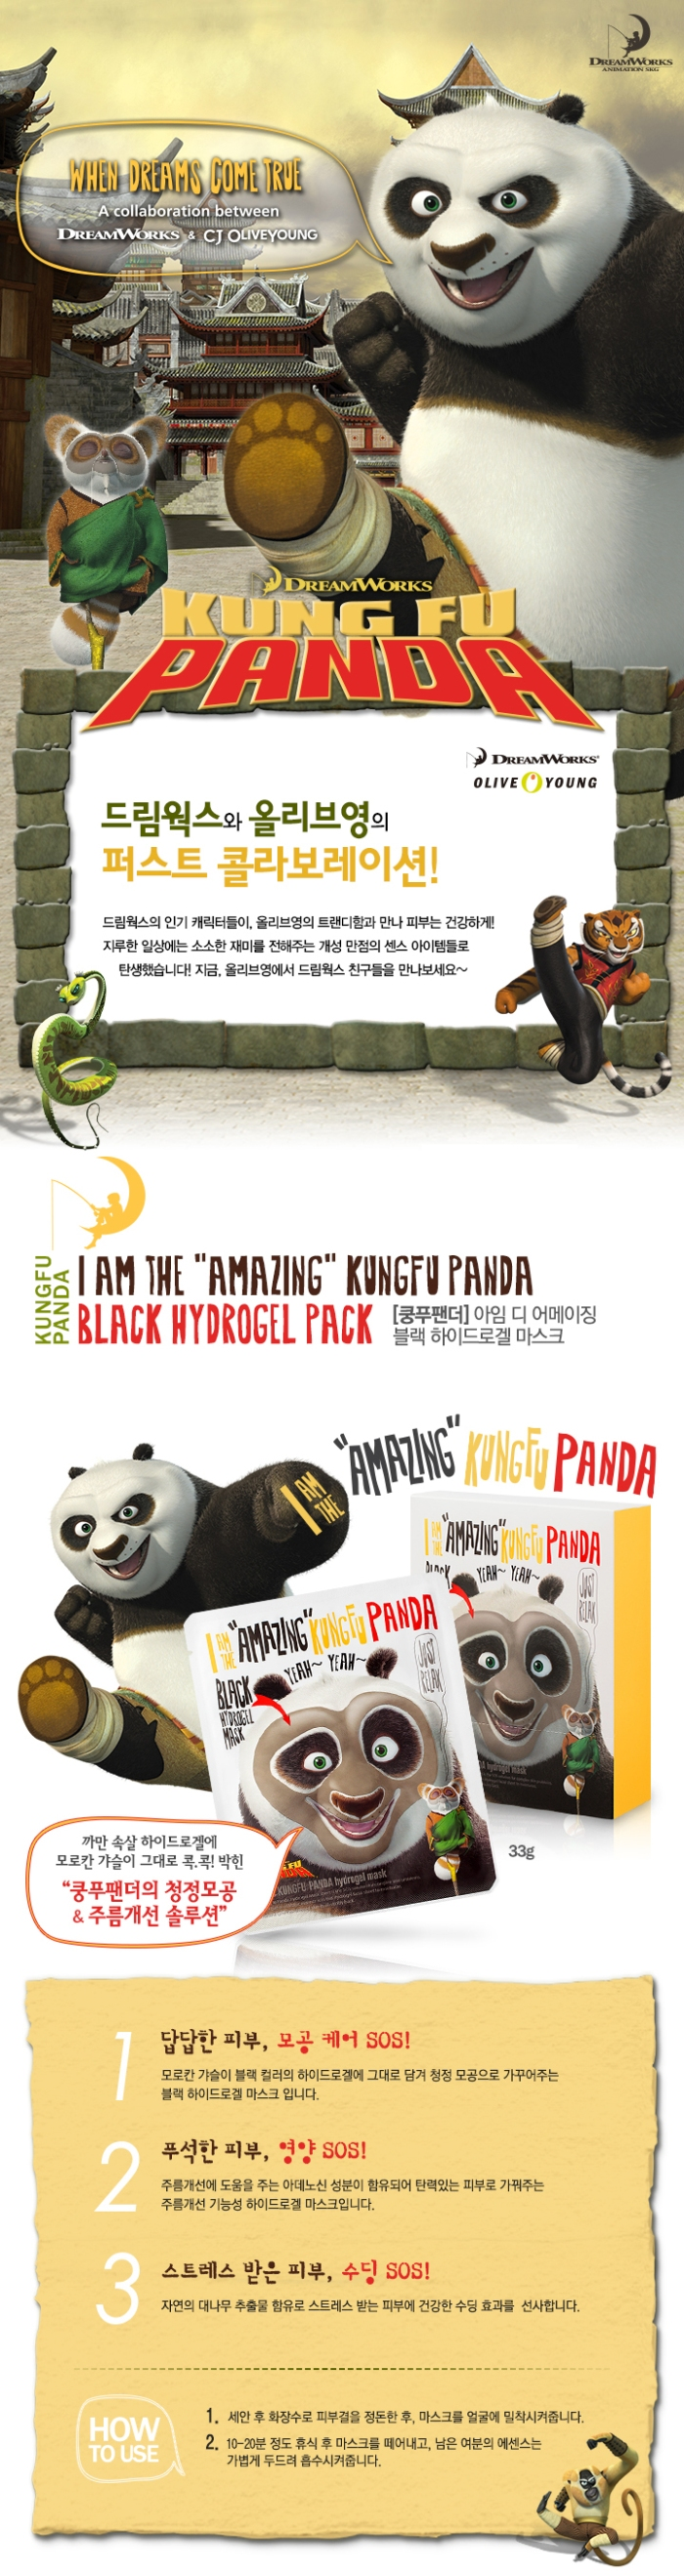 I'm The Amazing Kung Fu Panda Hydrogel Mask (Info - Kr)